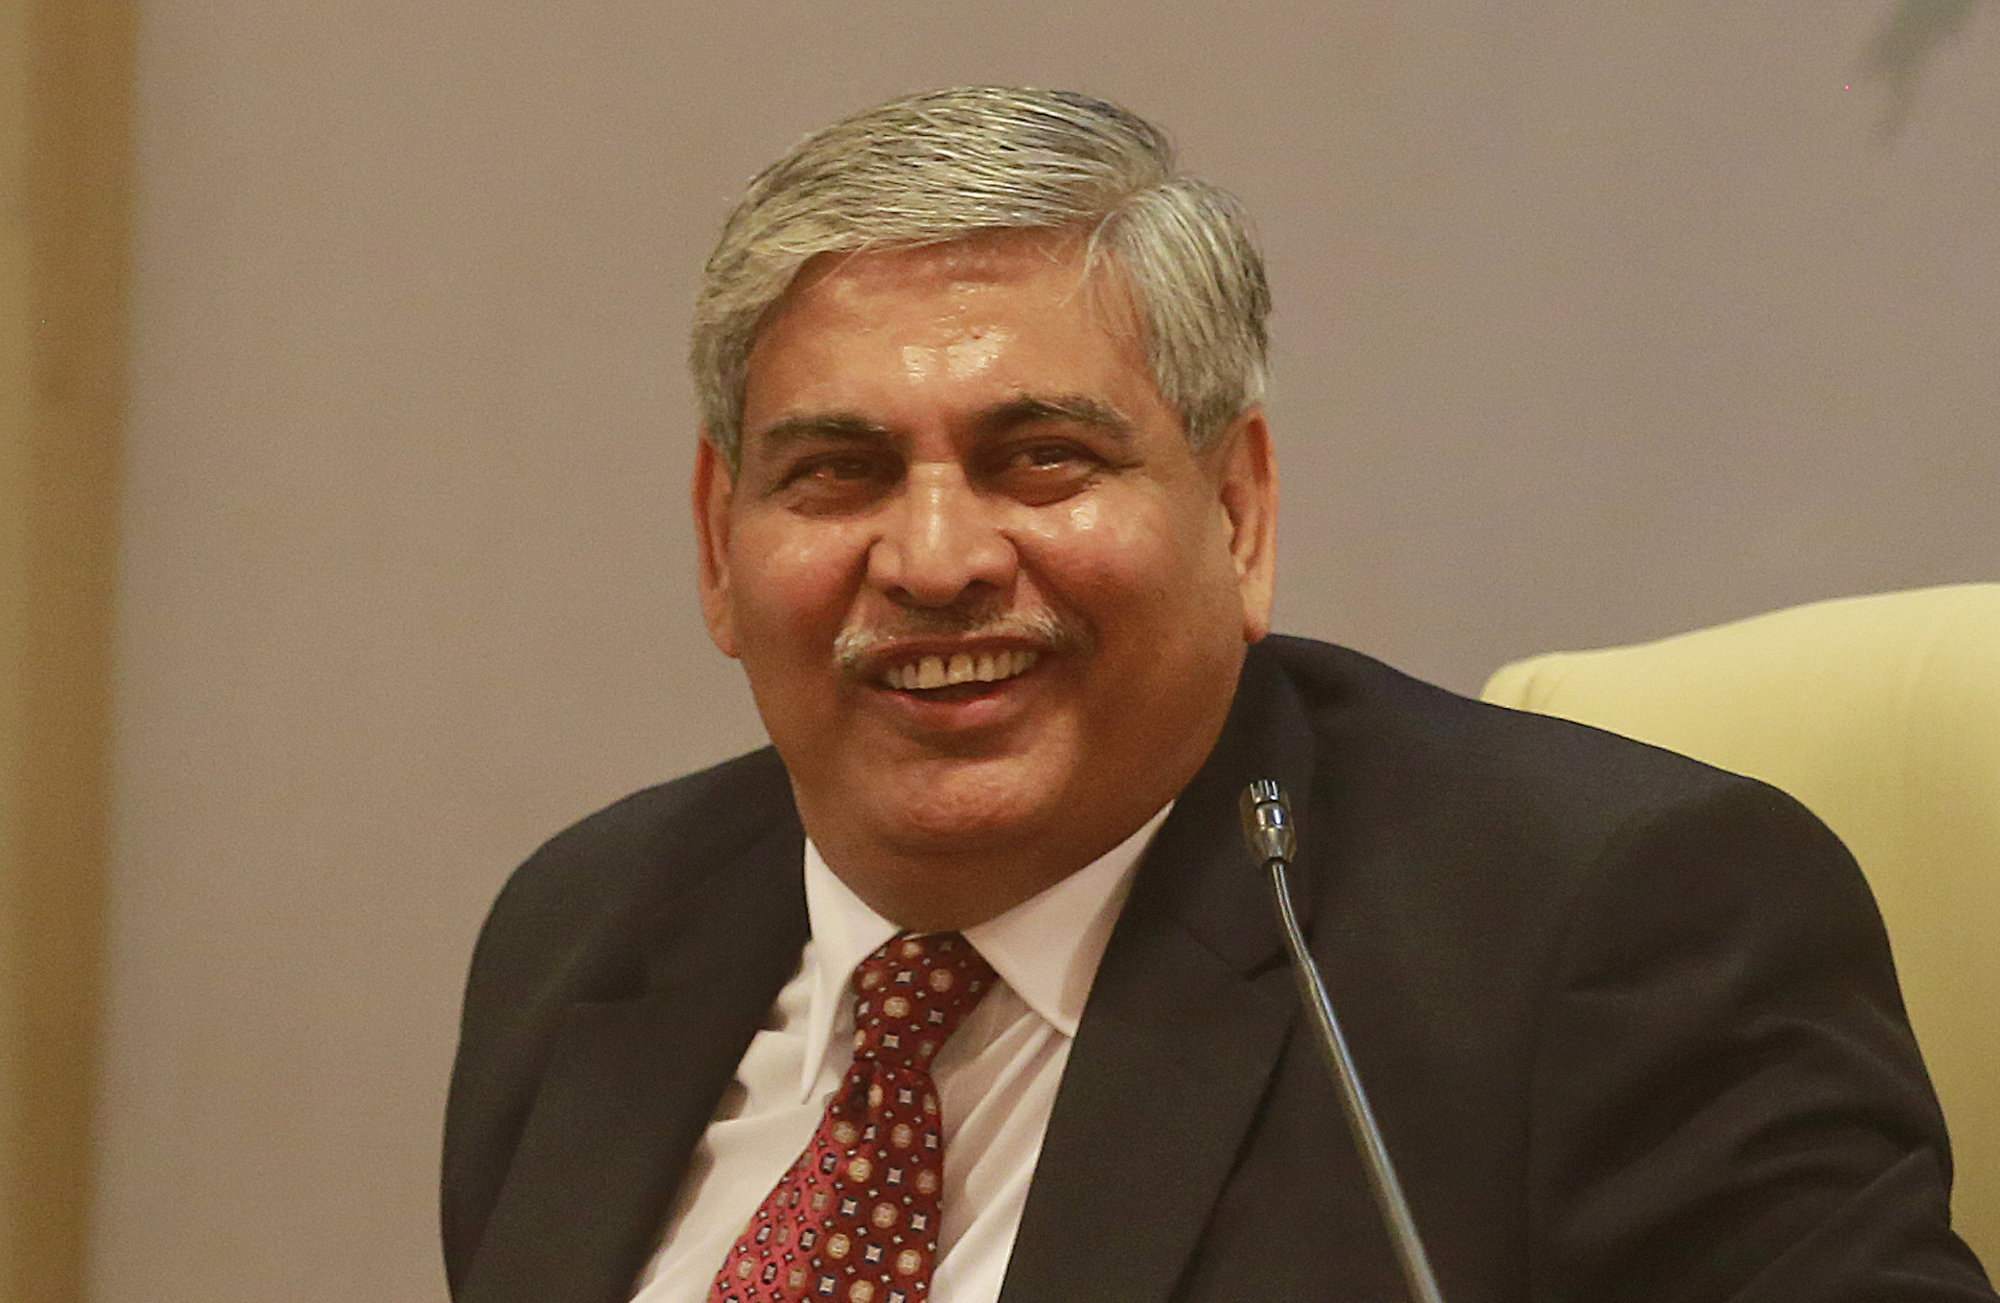 Board of Control for Cricket in India (BCCI)'s then newly elected president Shashank Manohar smiles during a press conference in Mumbai, India on October 4, 2015. Photo: AP